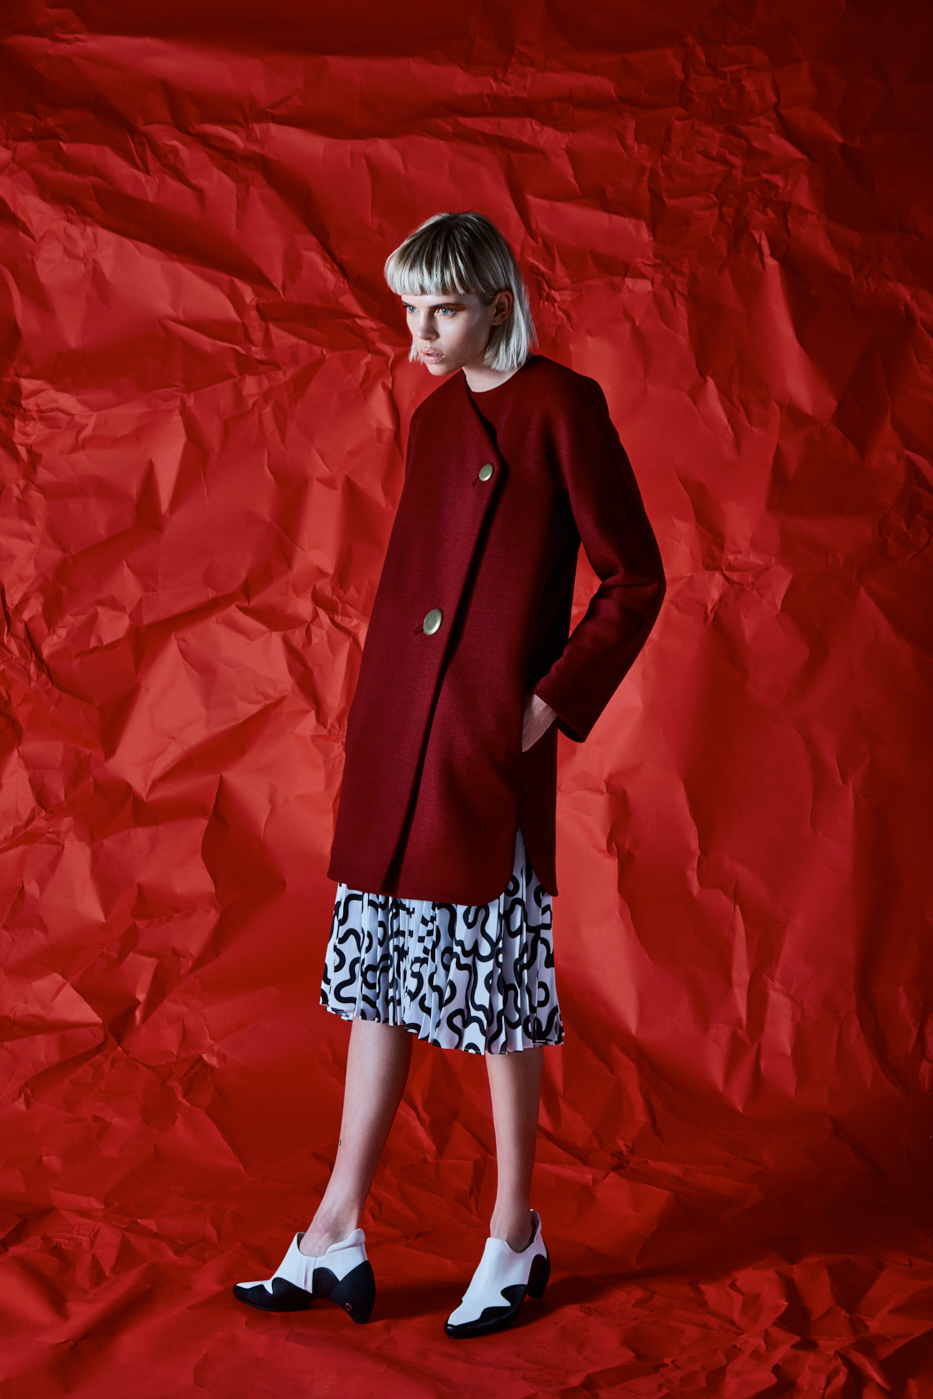 Coat by Balenciaga; skirt by JW Anderson; shoes by Courrèges